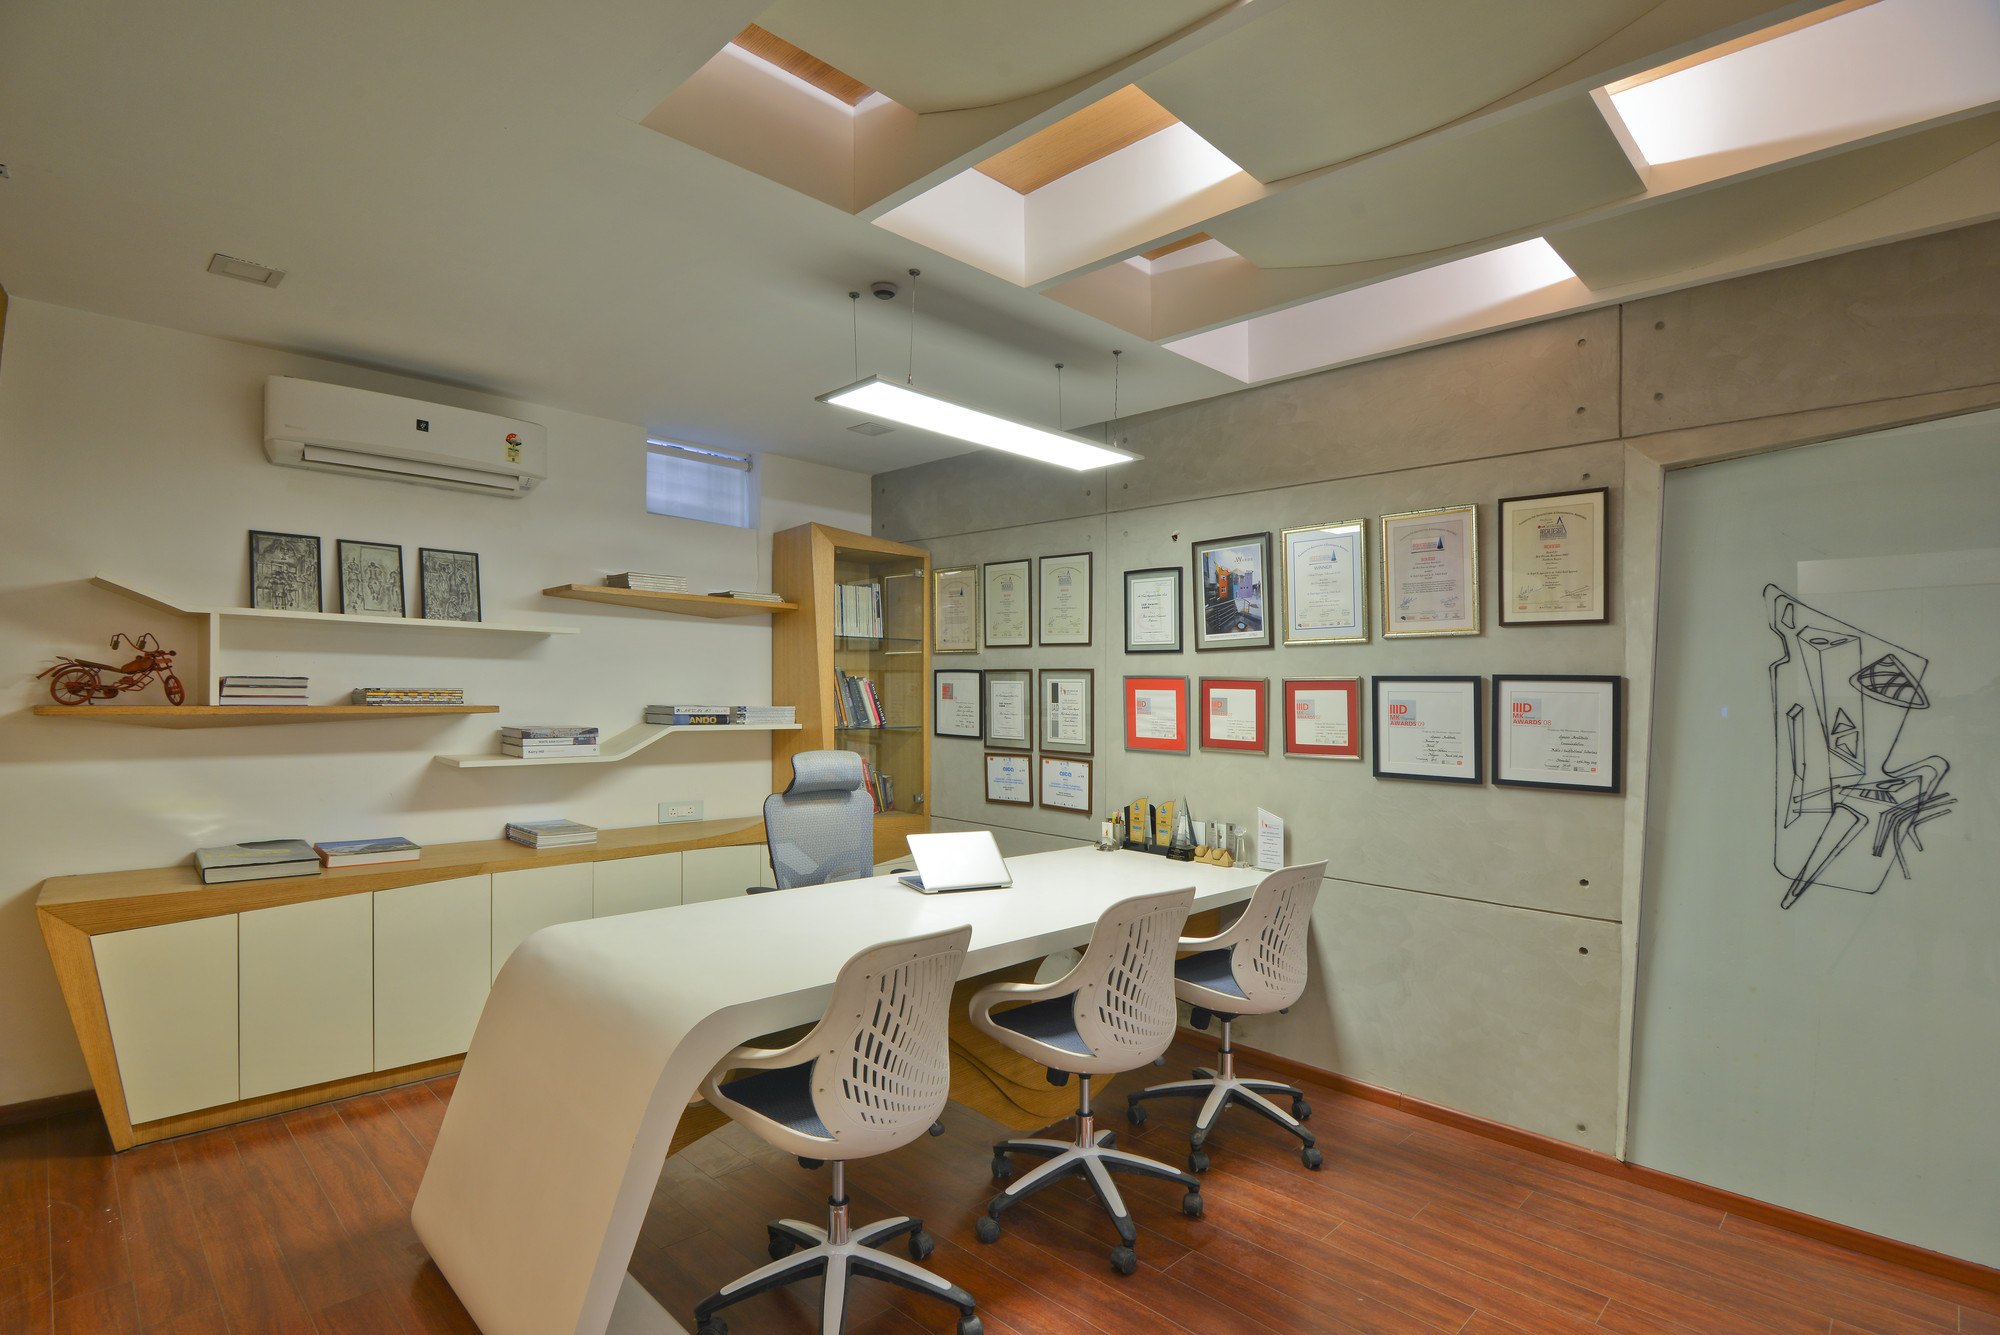 Gallery of architect s office spaces architects ka 10 for Spaces architecture studio delhi